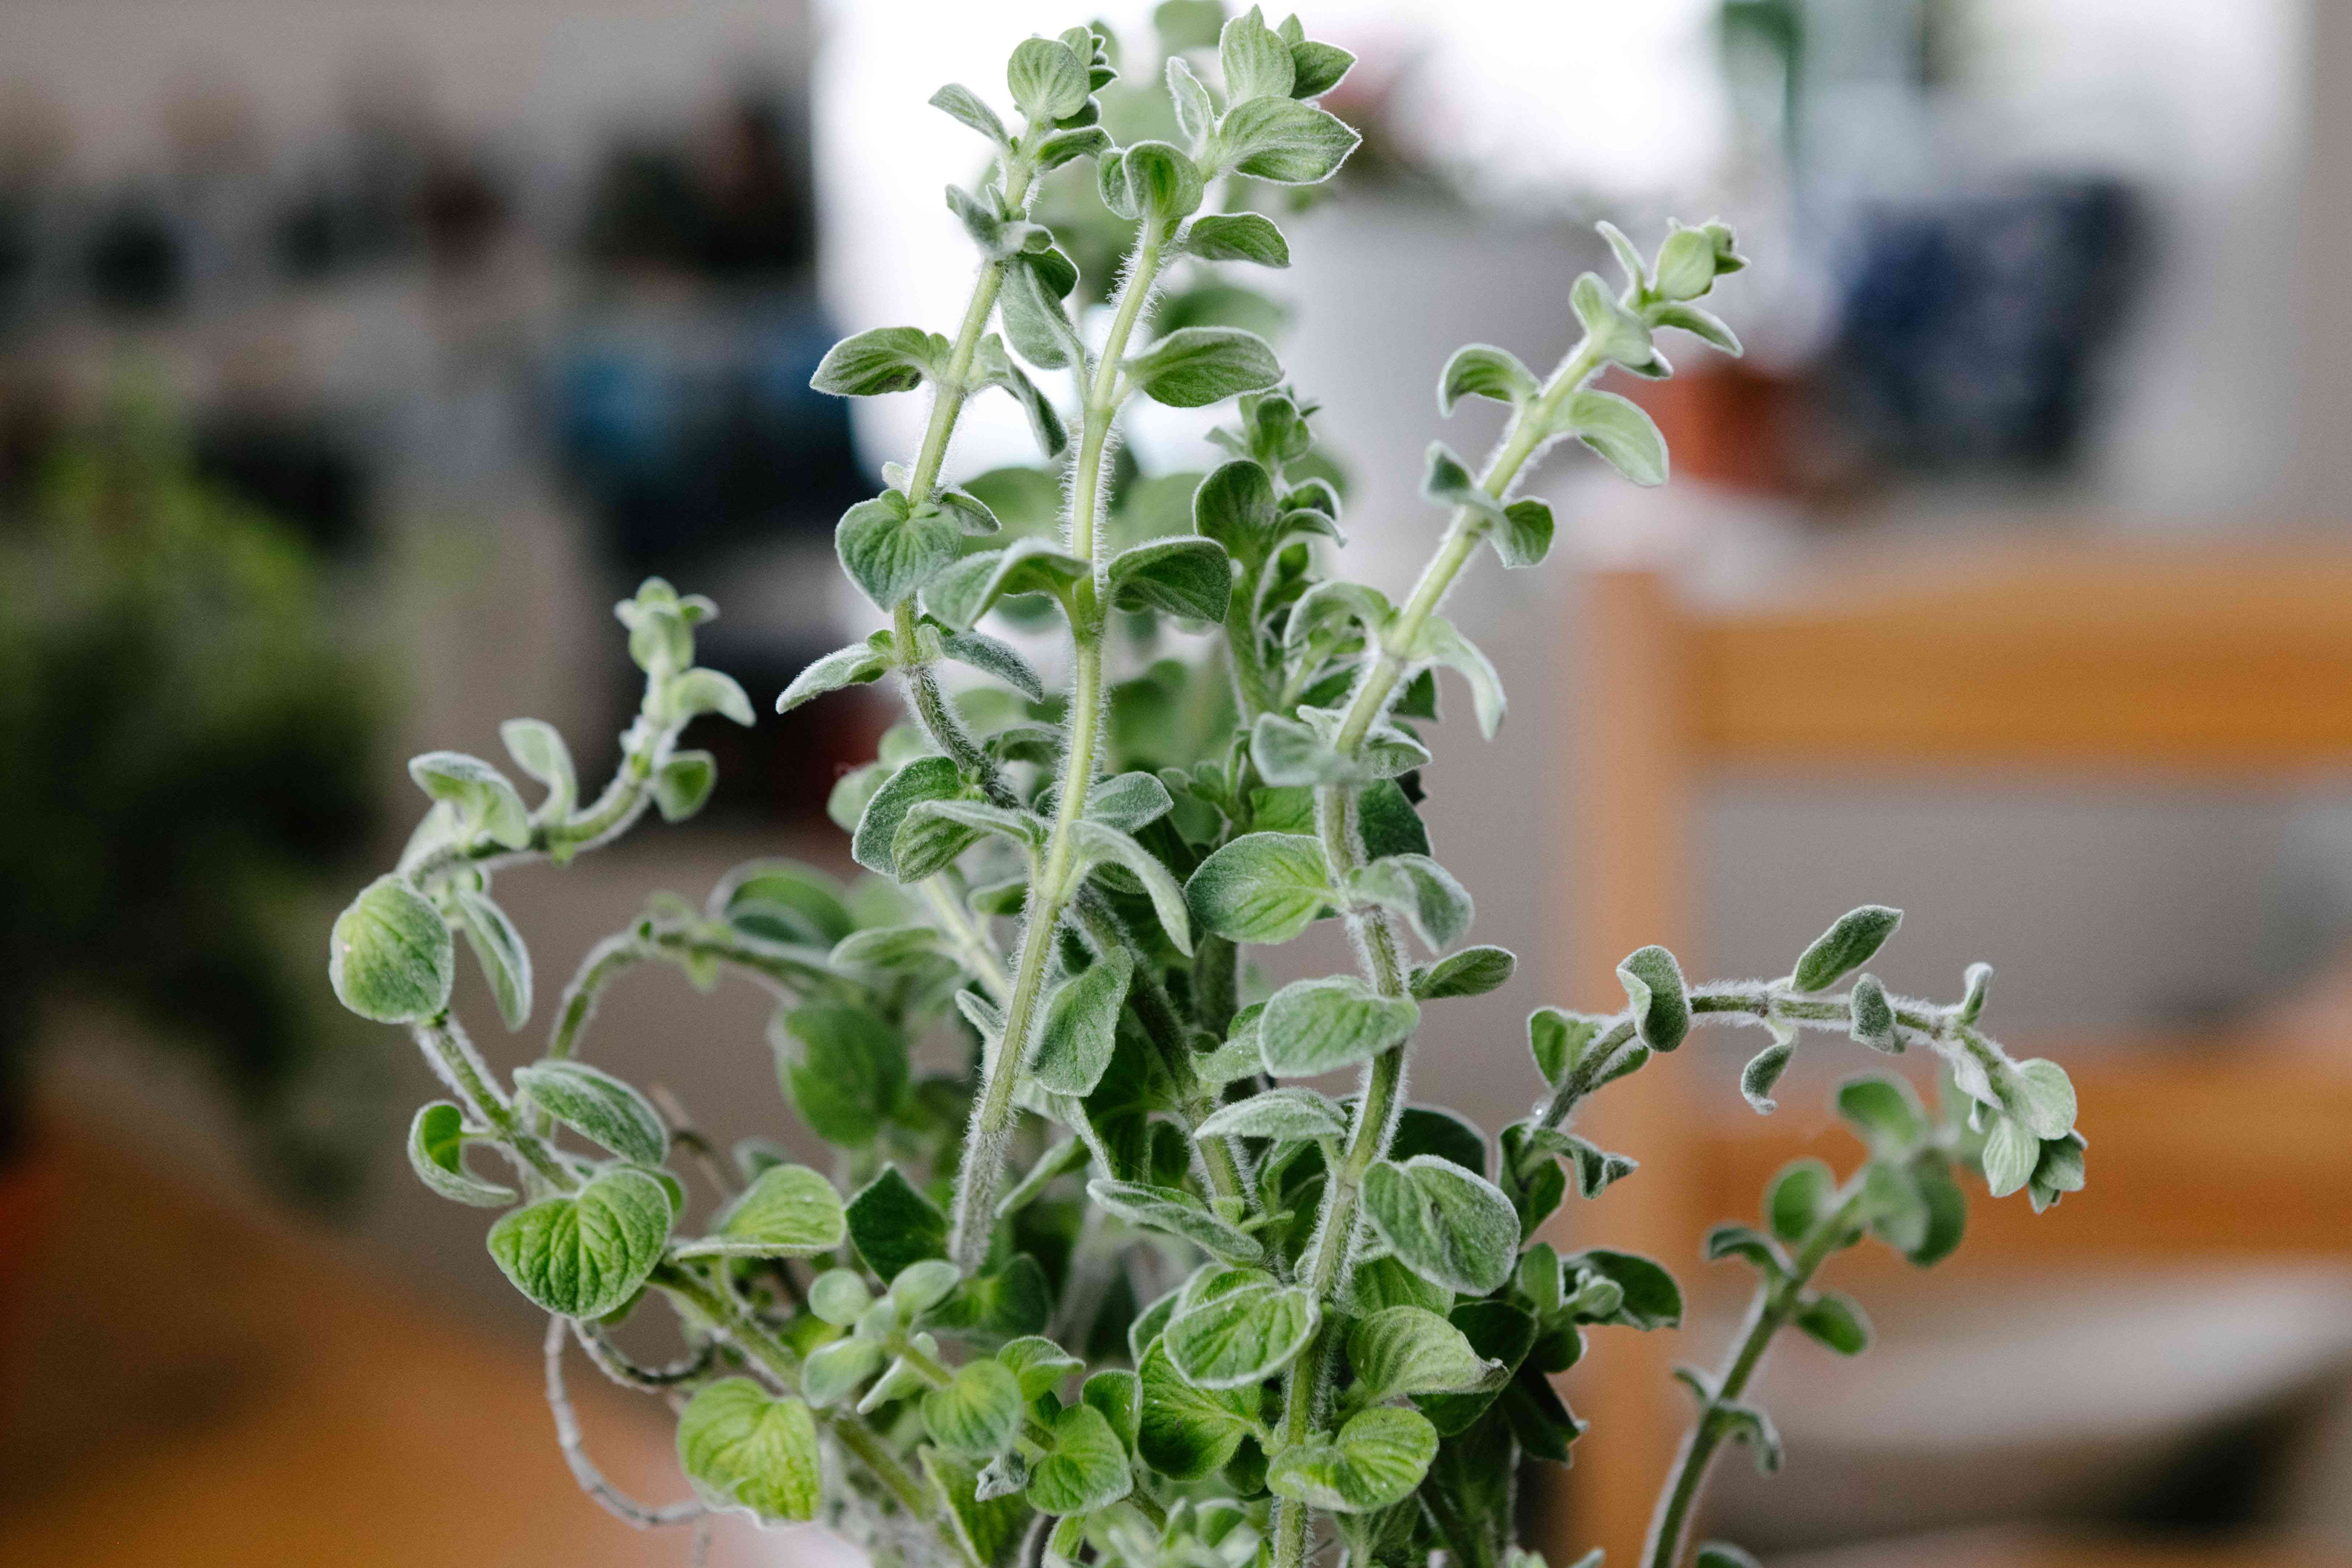 close-up foreground shot of fuzzy oregano marjoram herb with blurred house background